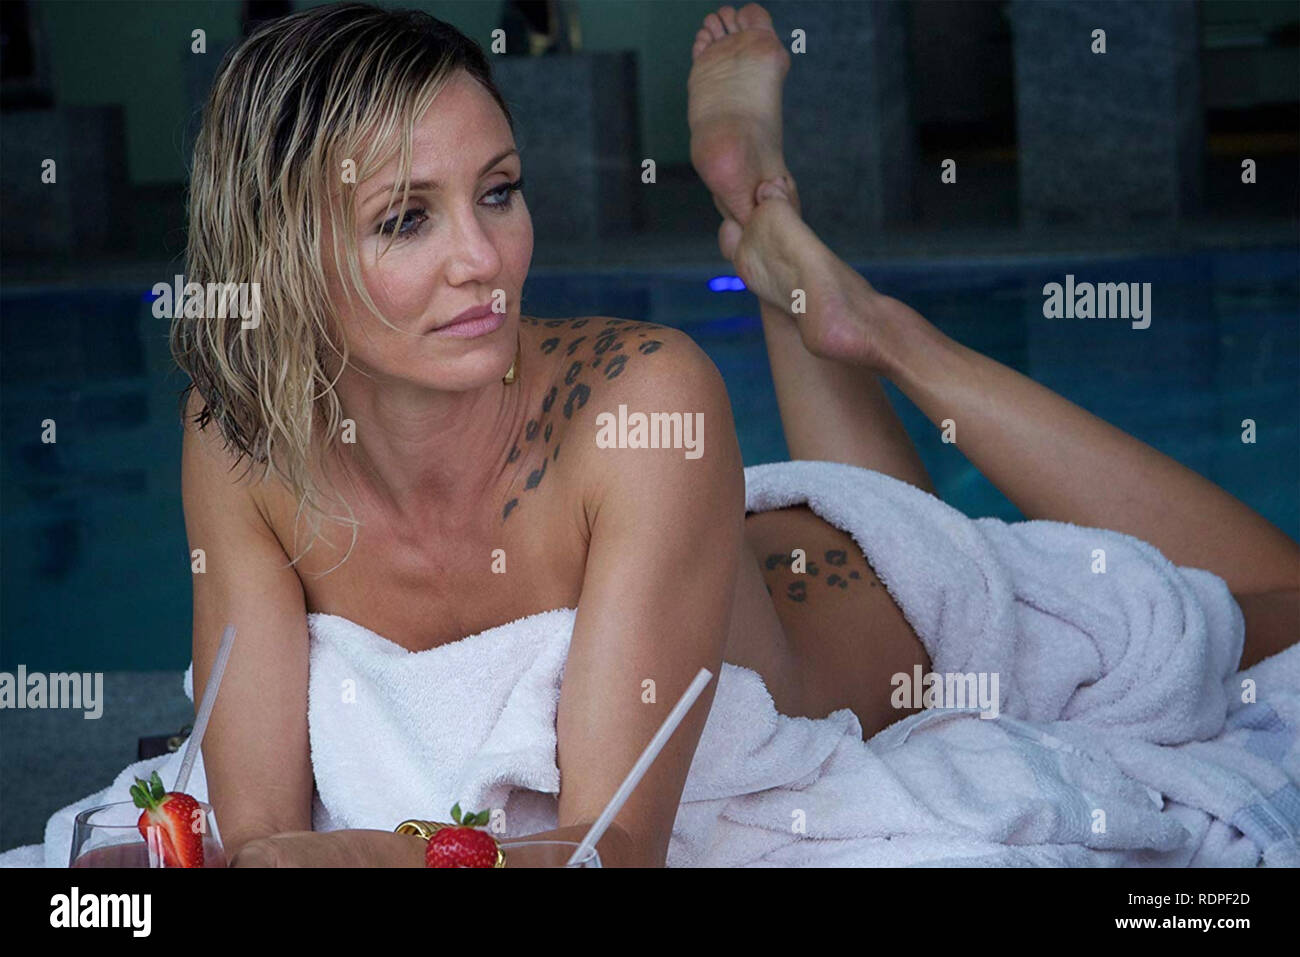 THE COUNSELLOR 2013 film with Cameron Diaz - Stock Image